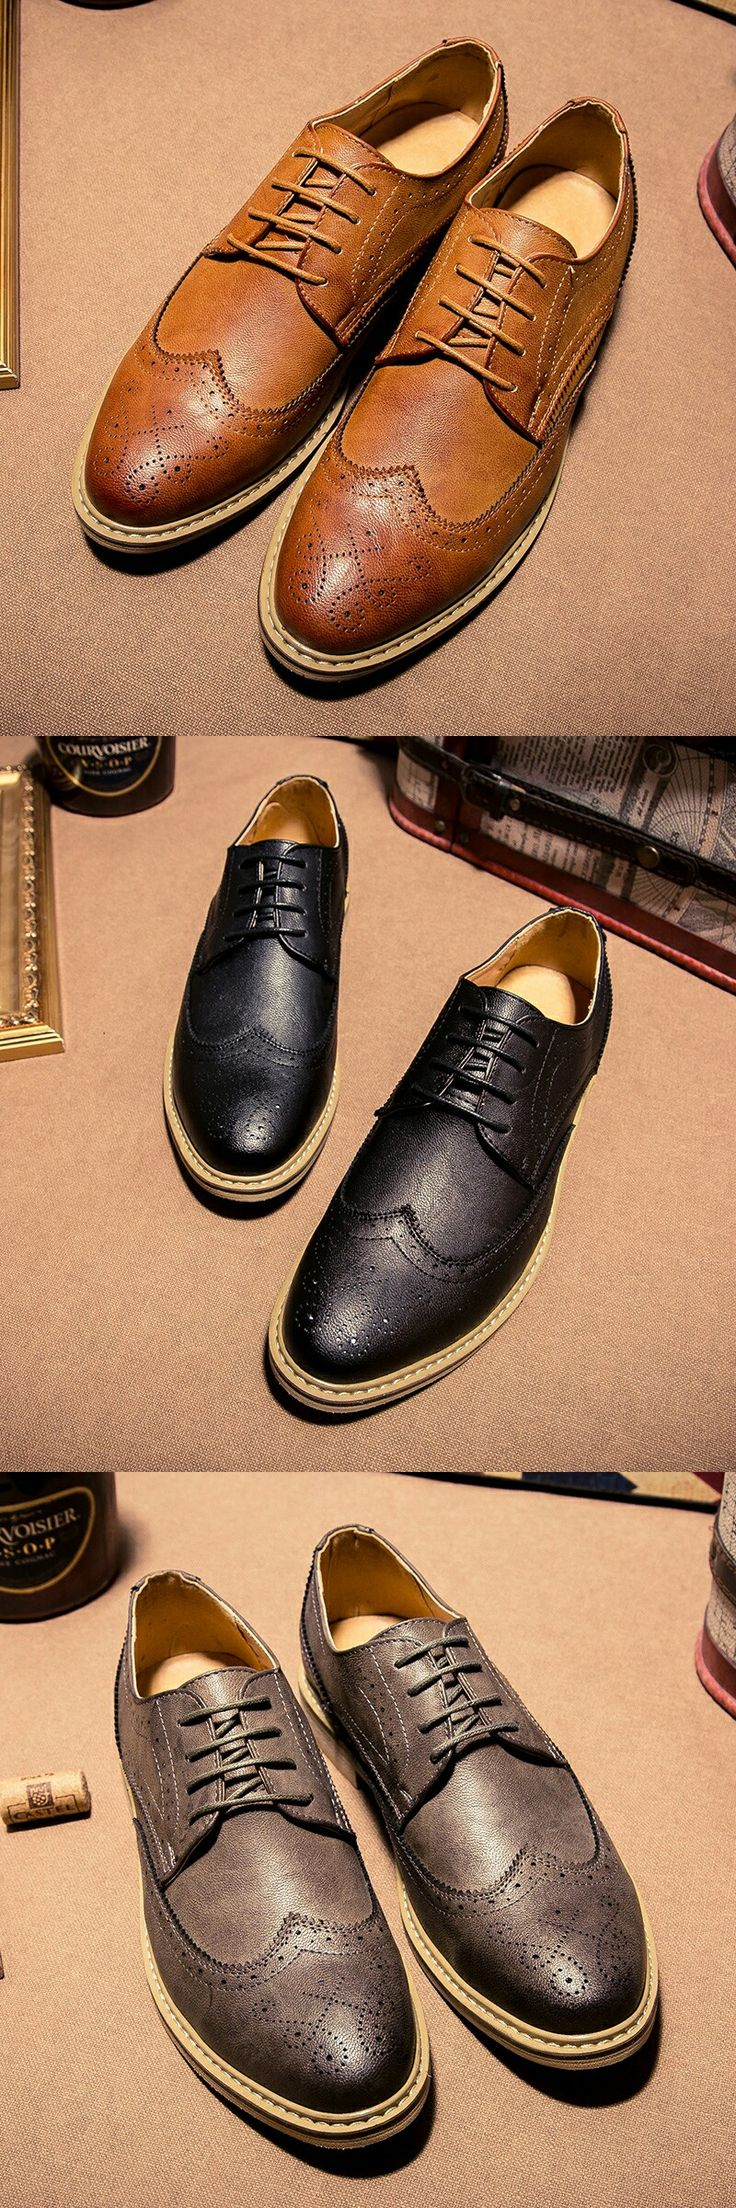 New Arrival Vintage Retro Leather Men Dress Shoes Business Formal Brogue Pointed Toe Carved Oxfords Wedding Shoes